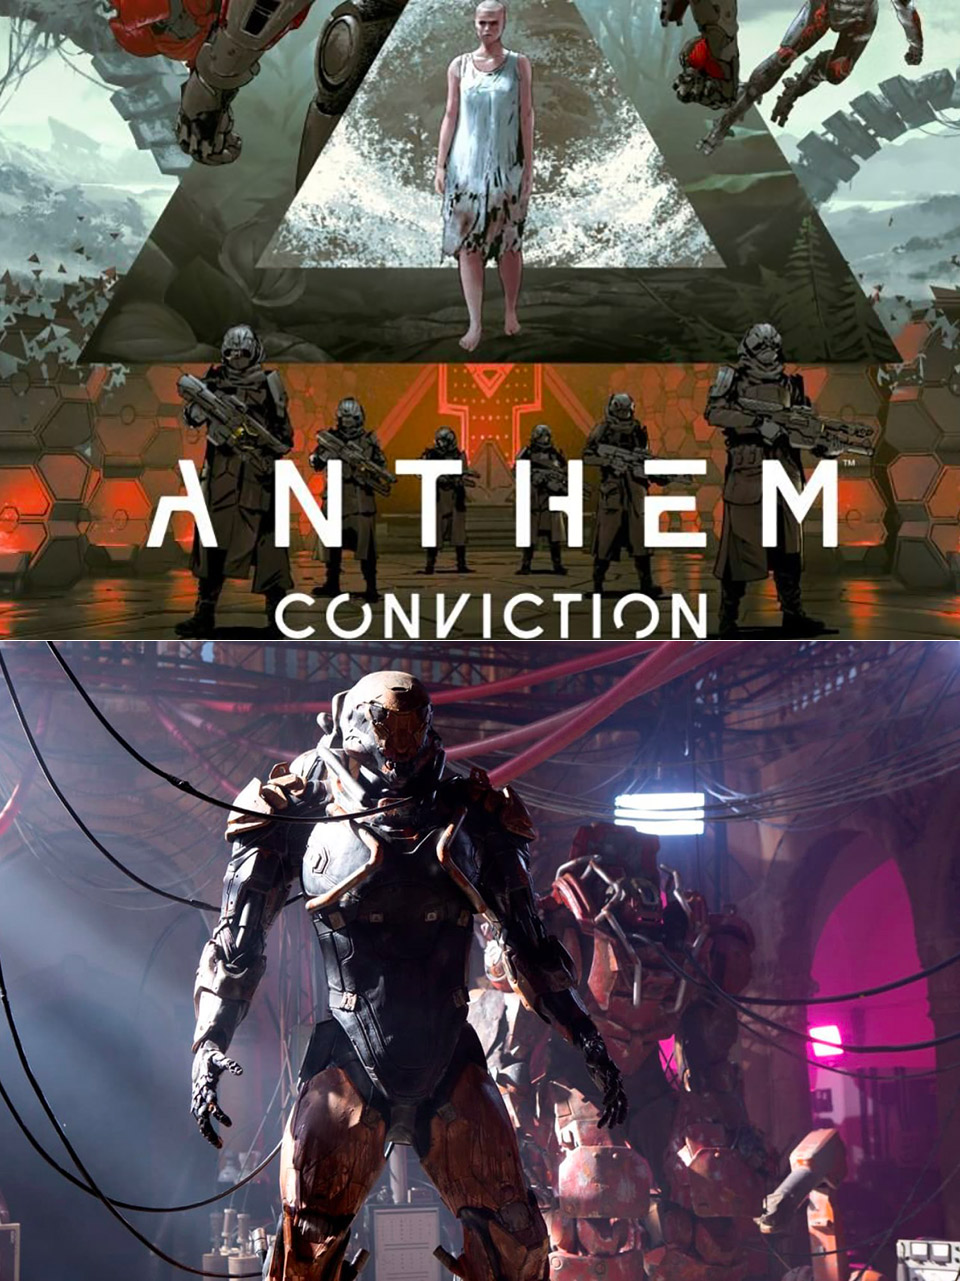 Conviction Anthem Prequel